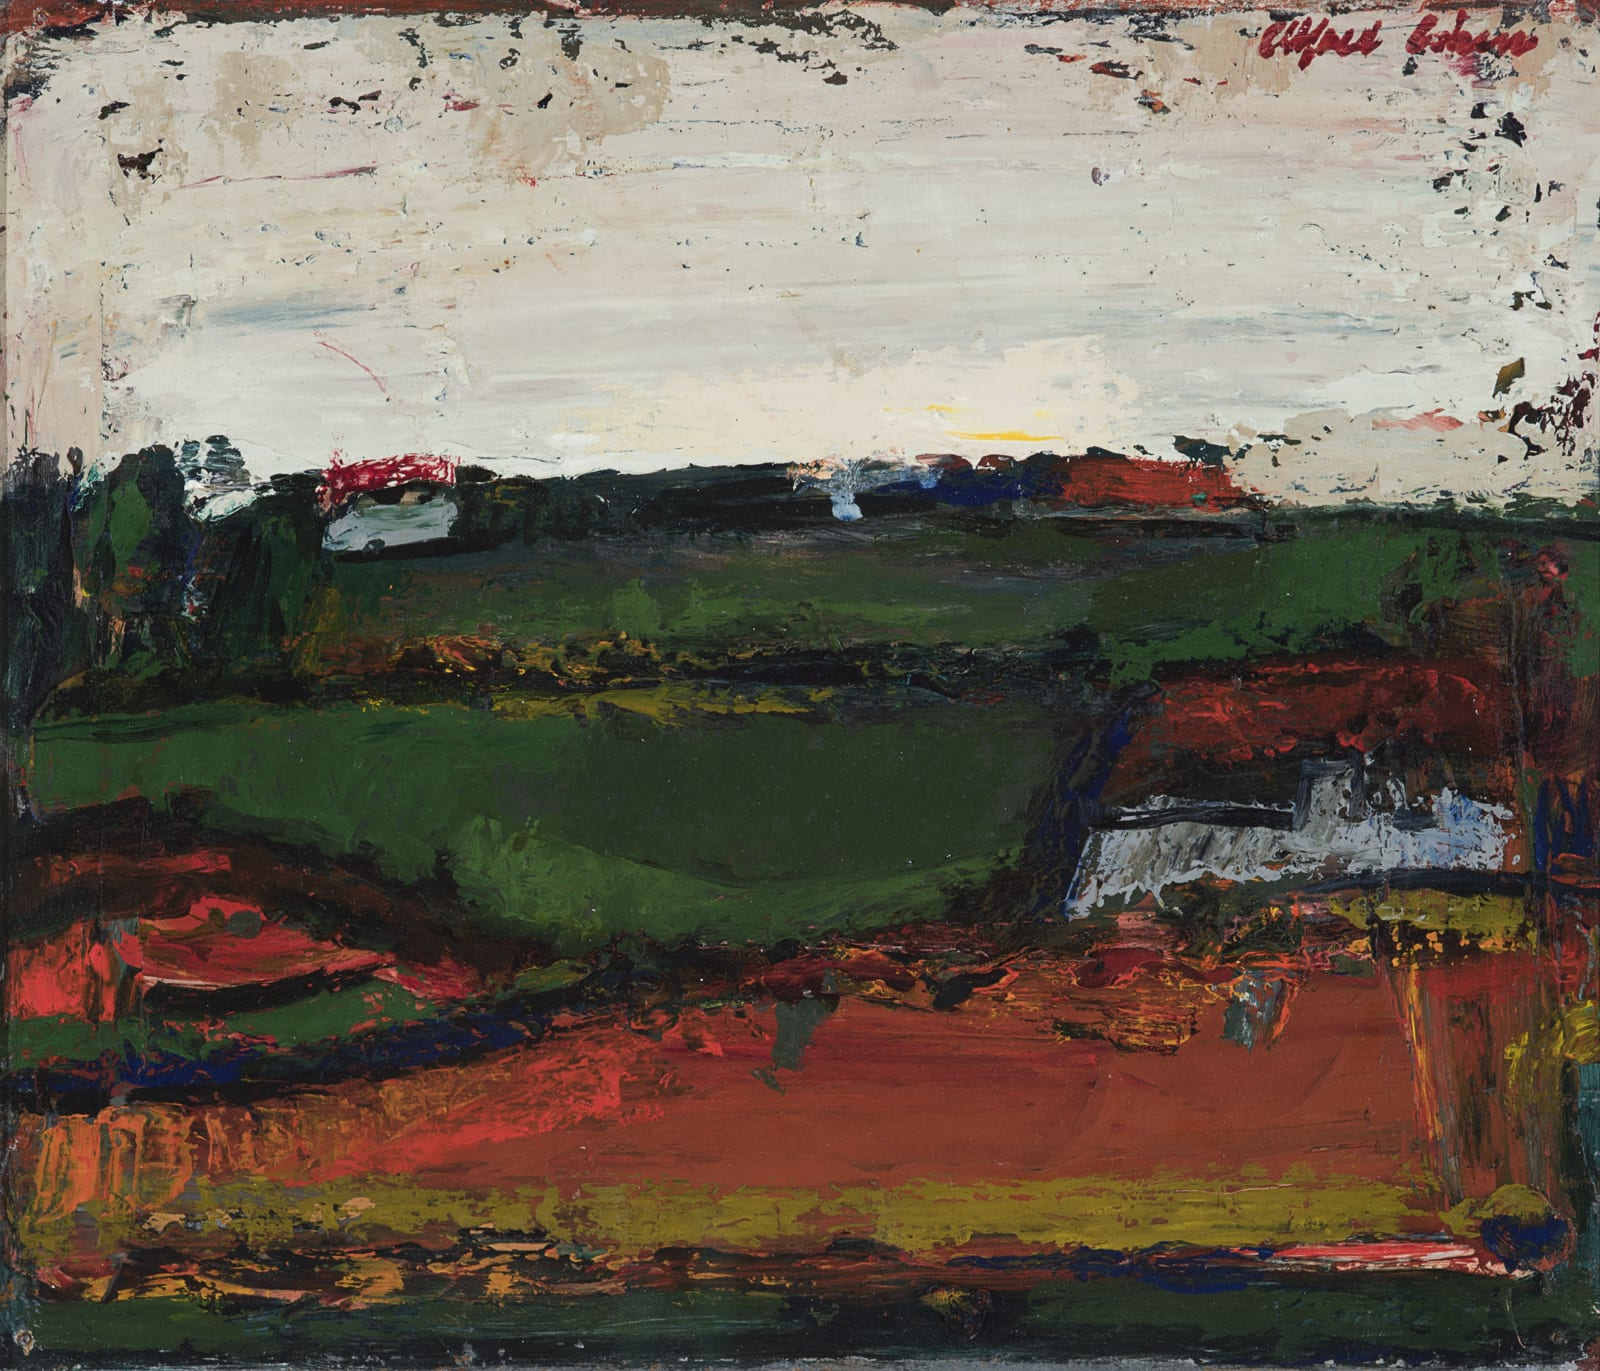 Alfred Cohen (1920-2001) Abstract Landscape 1964 Oil on board 25.7 x 29.9 cm Private Collection © Estate of Alfred Cohen 2020